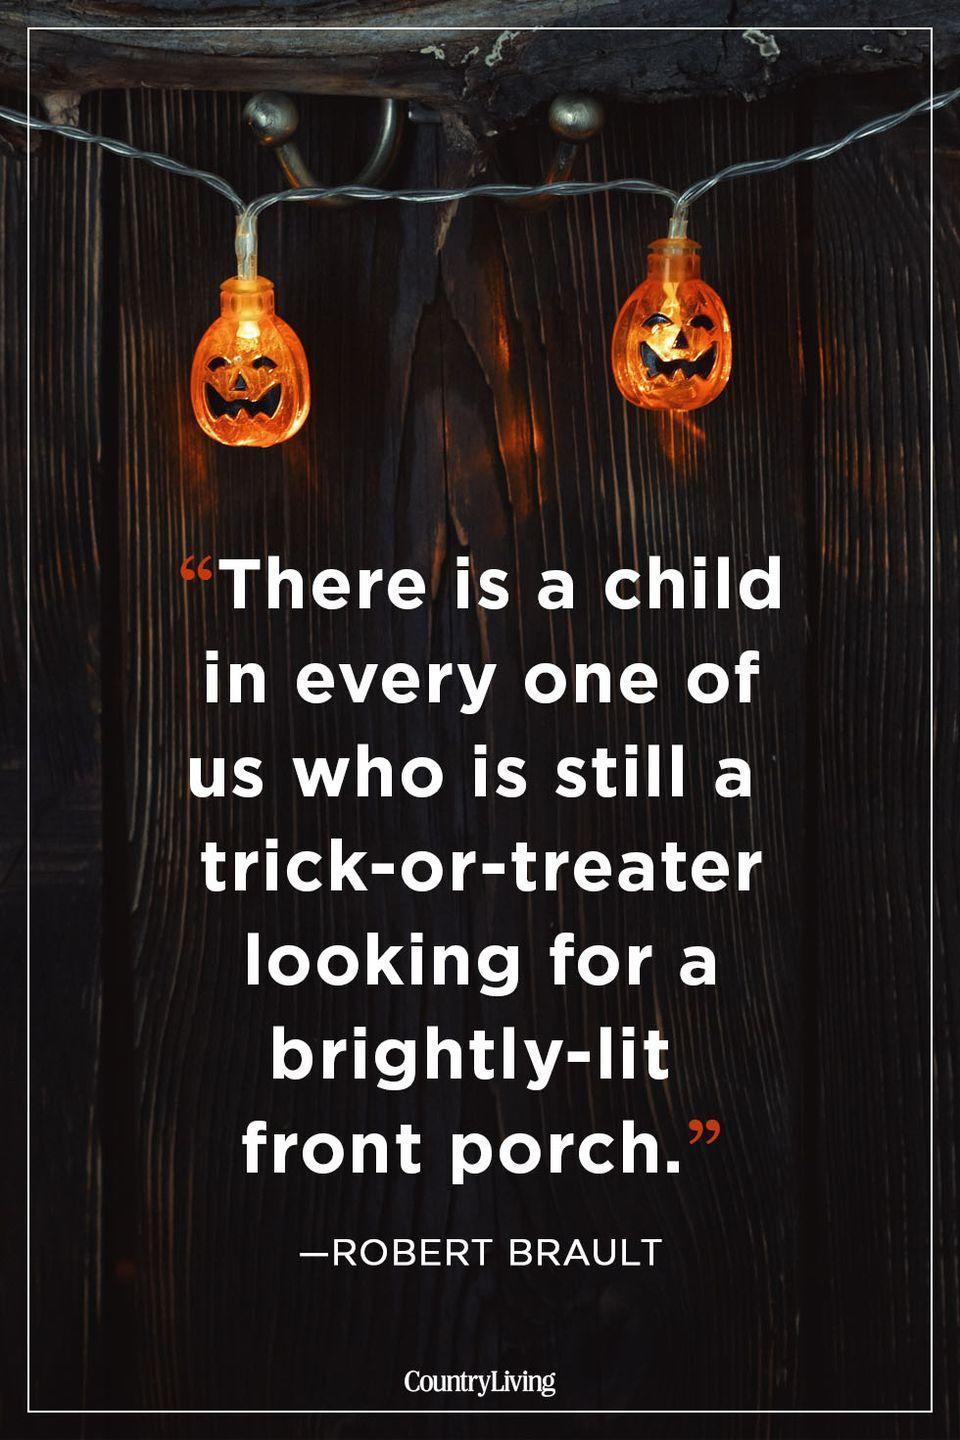 """<p>""""There is a child in every one of us who is still a trick-or-treater looking for a brightly-lit front porch.""""</p>"""